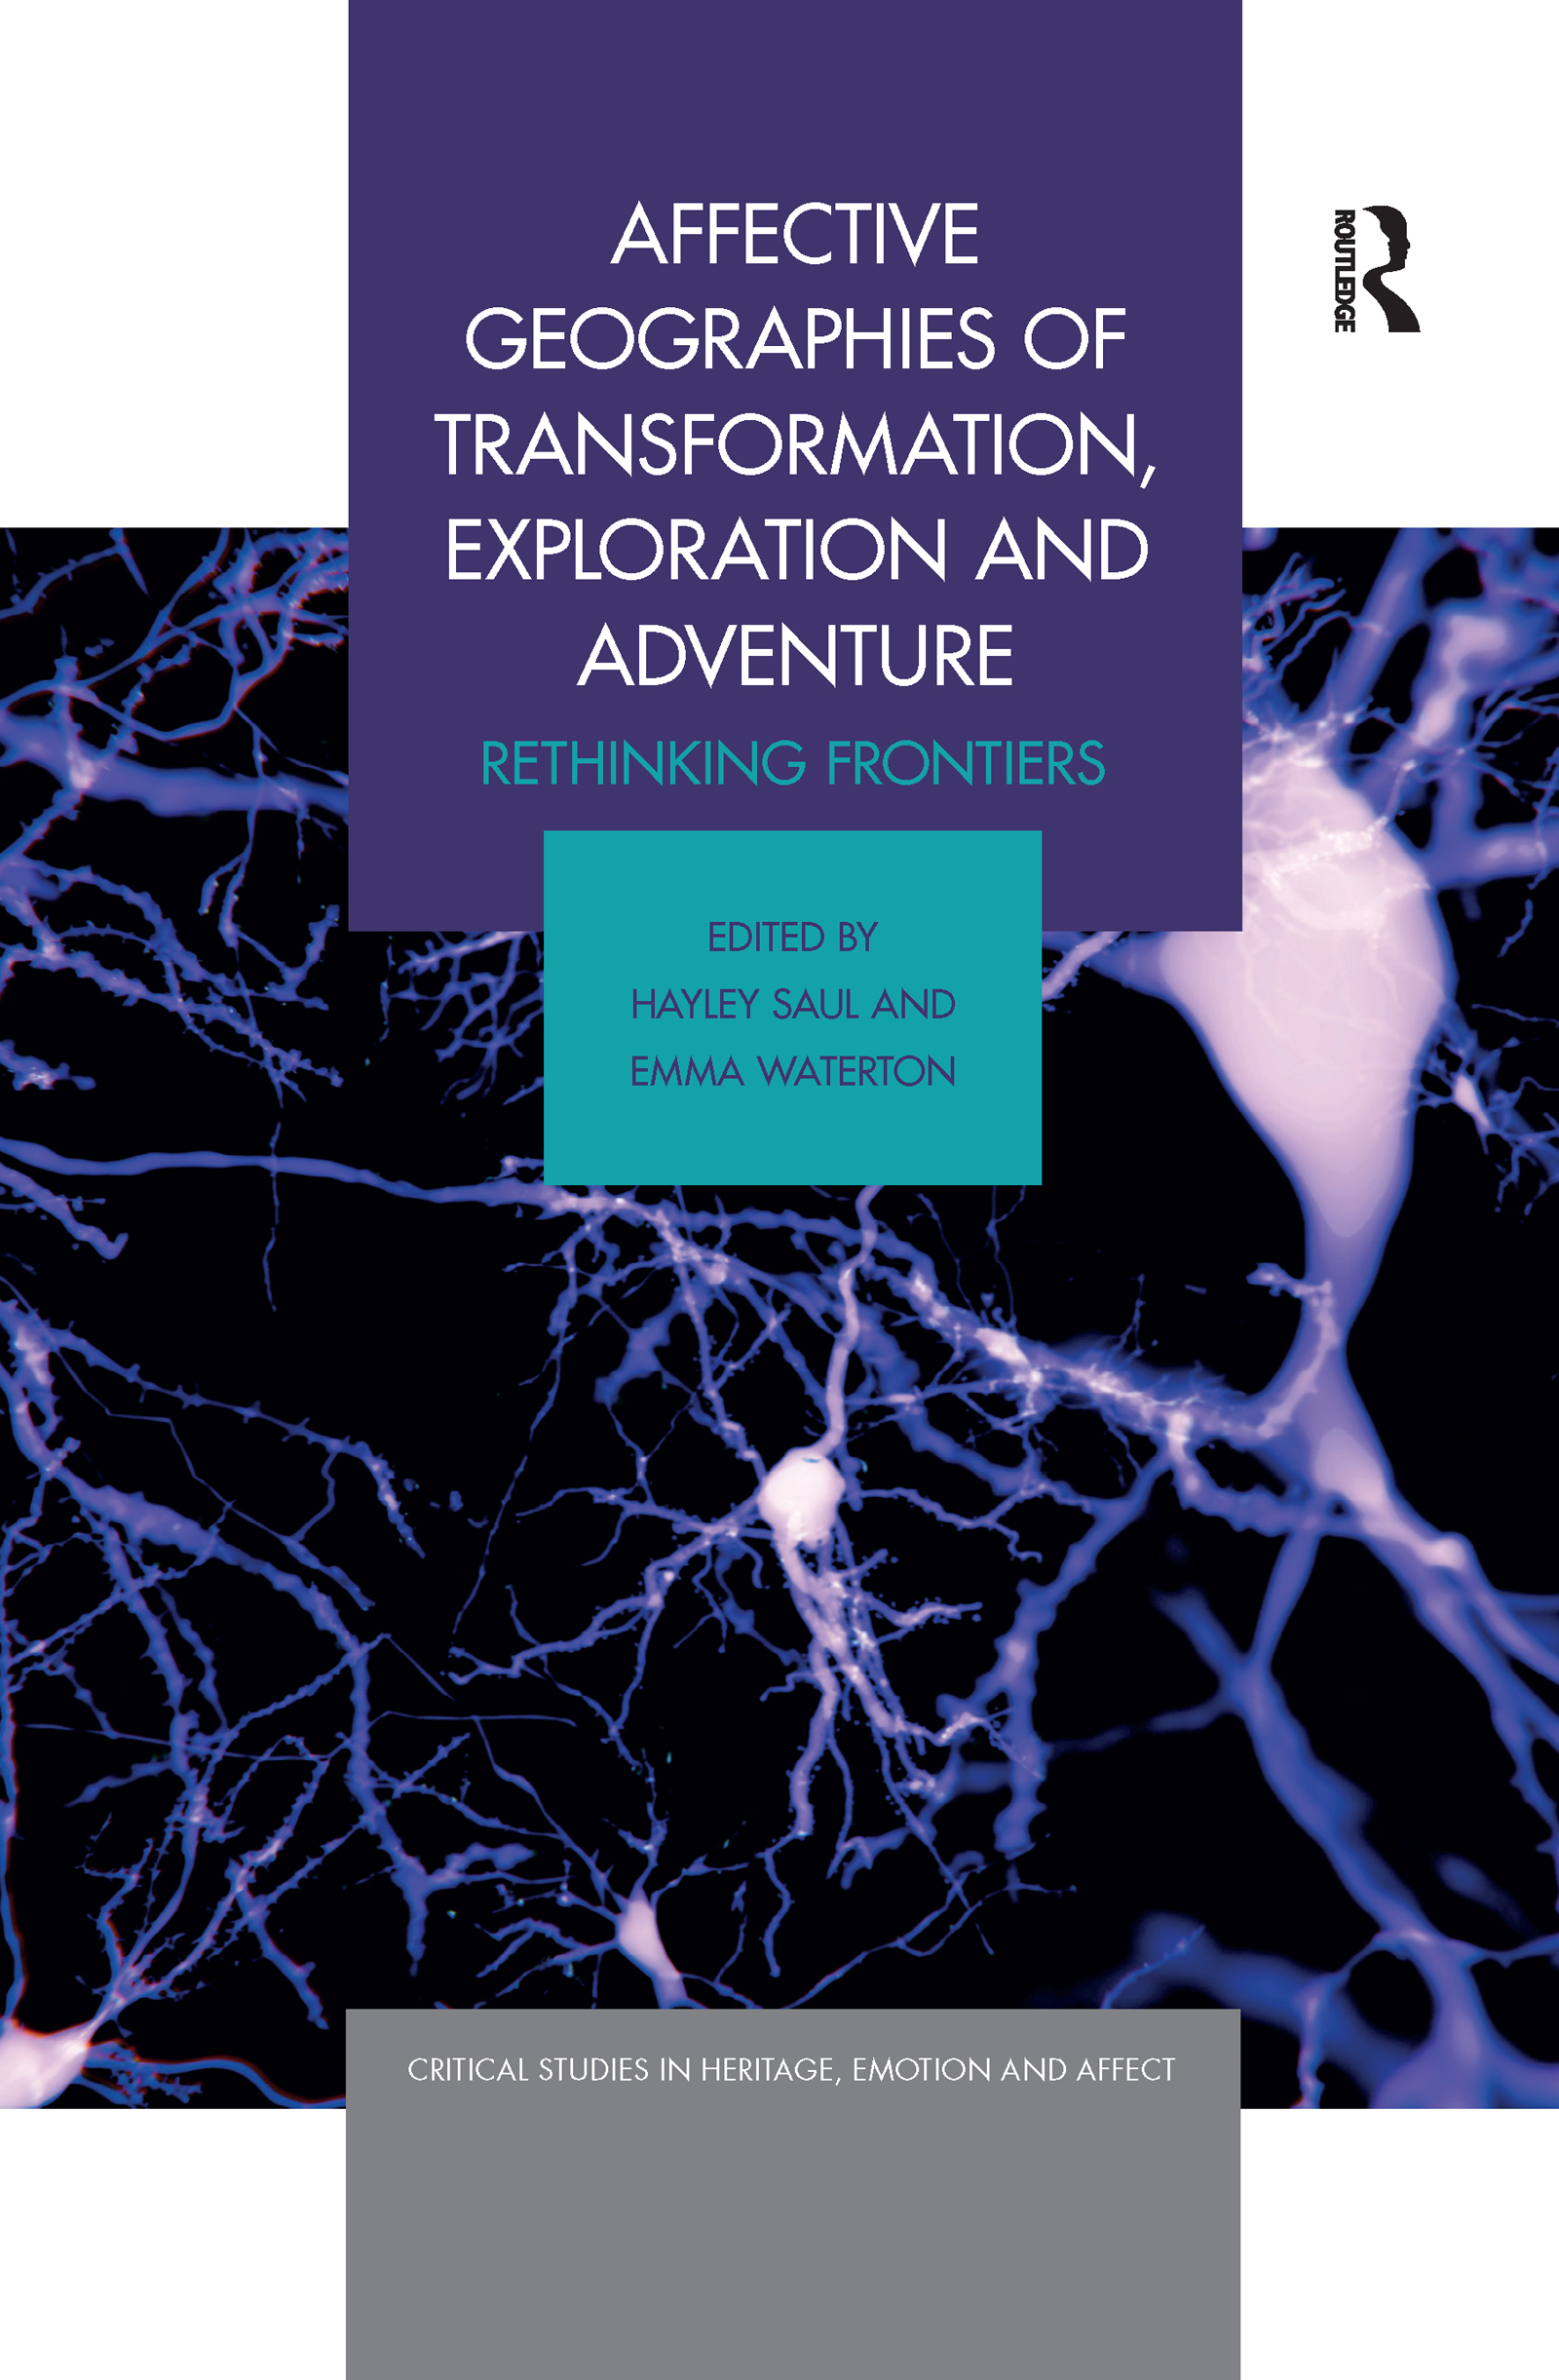 Affective Geographies of Transformation, Exploration and Adventure